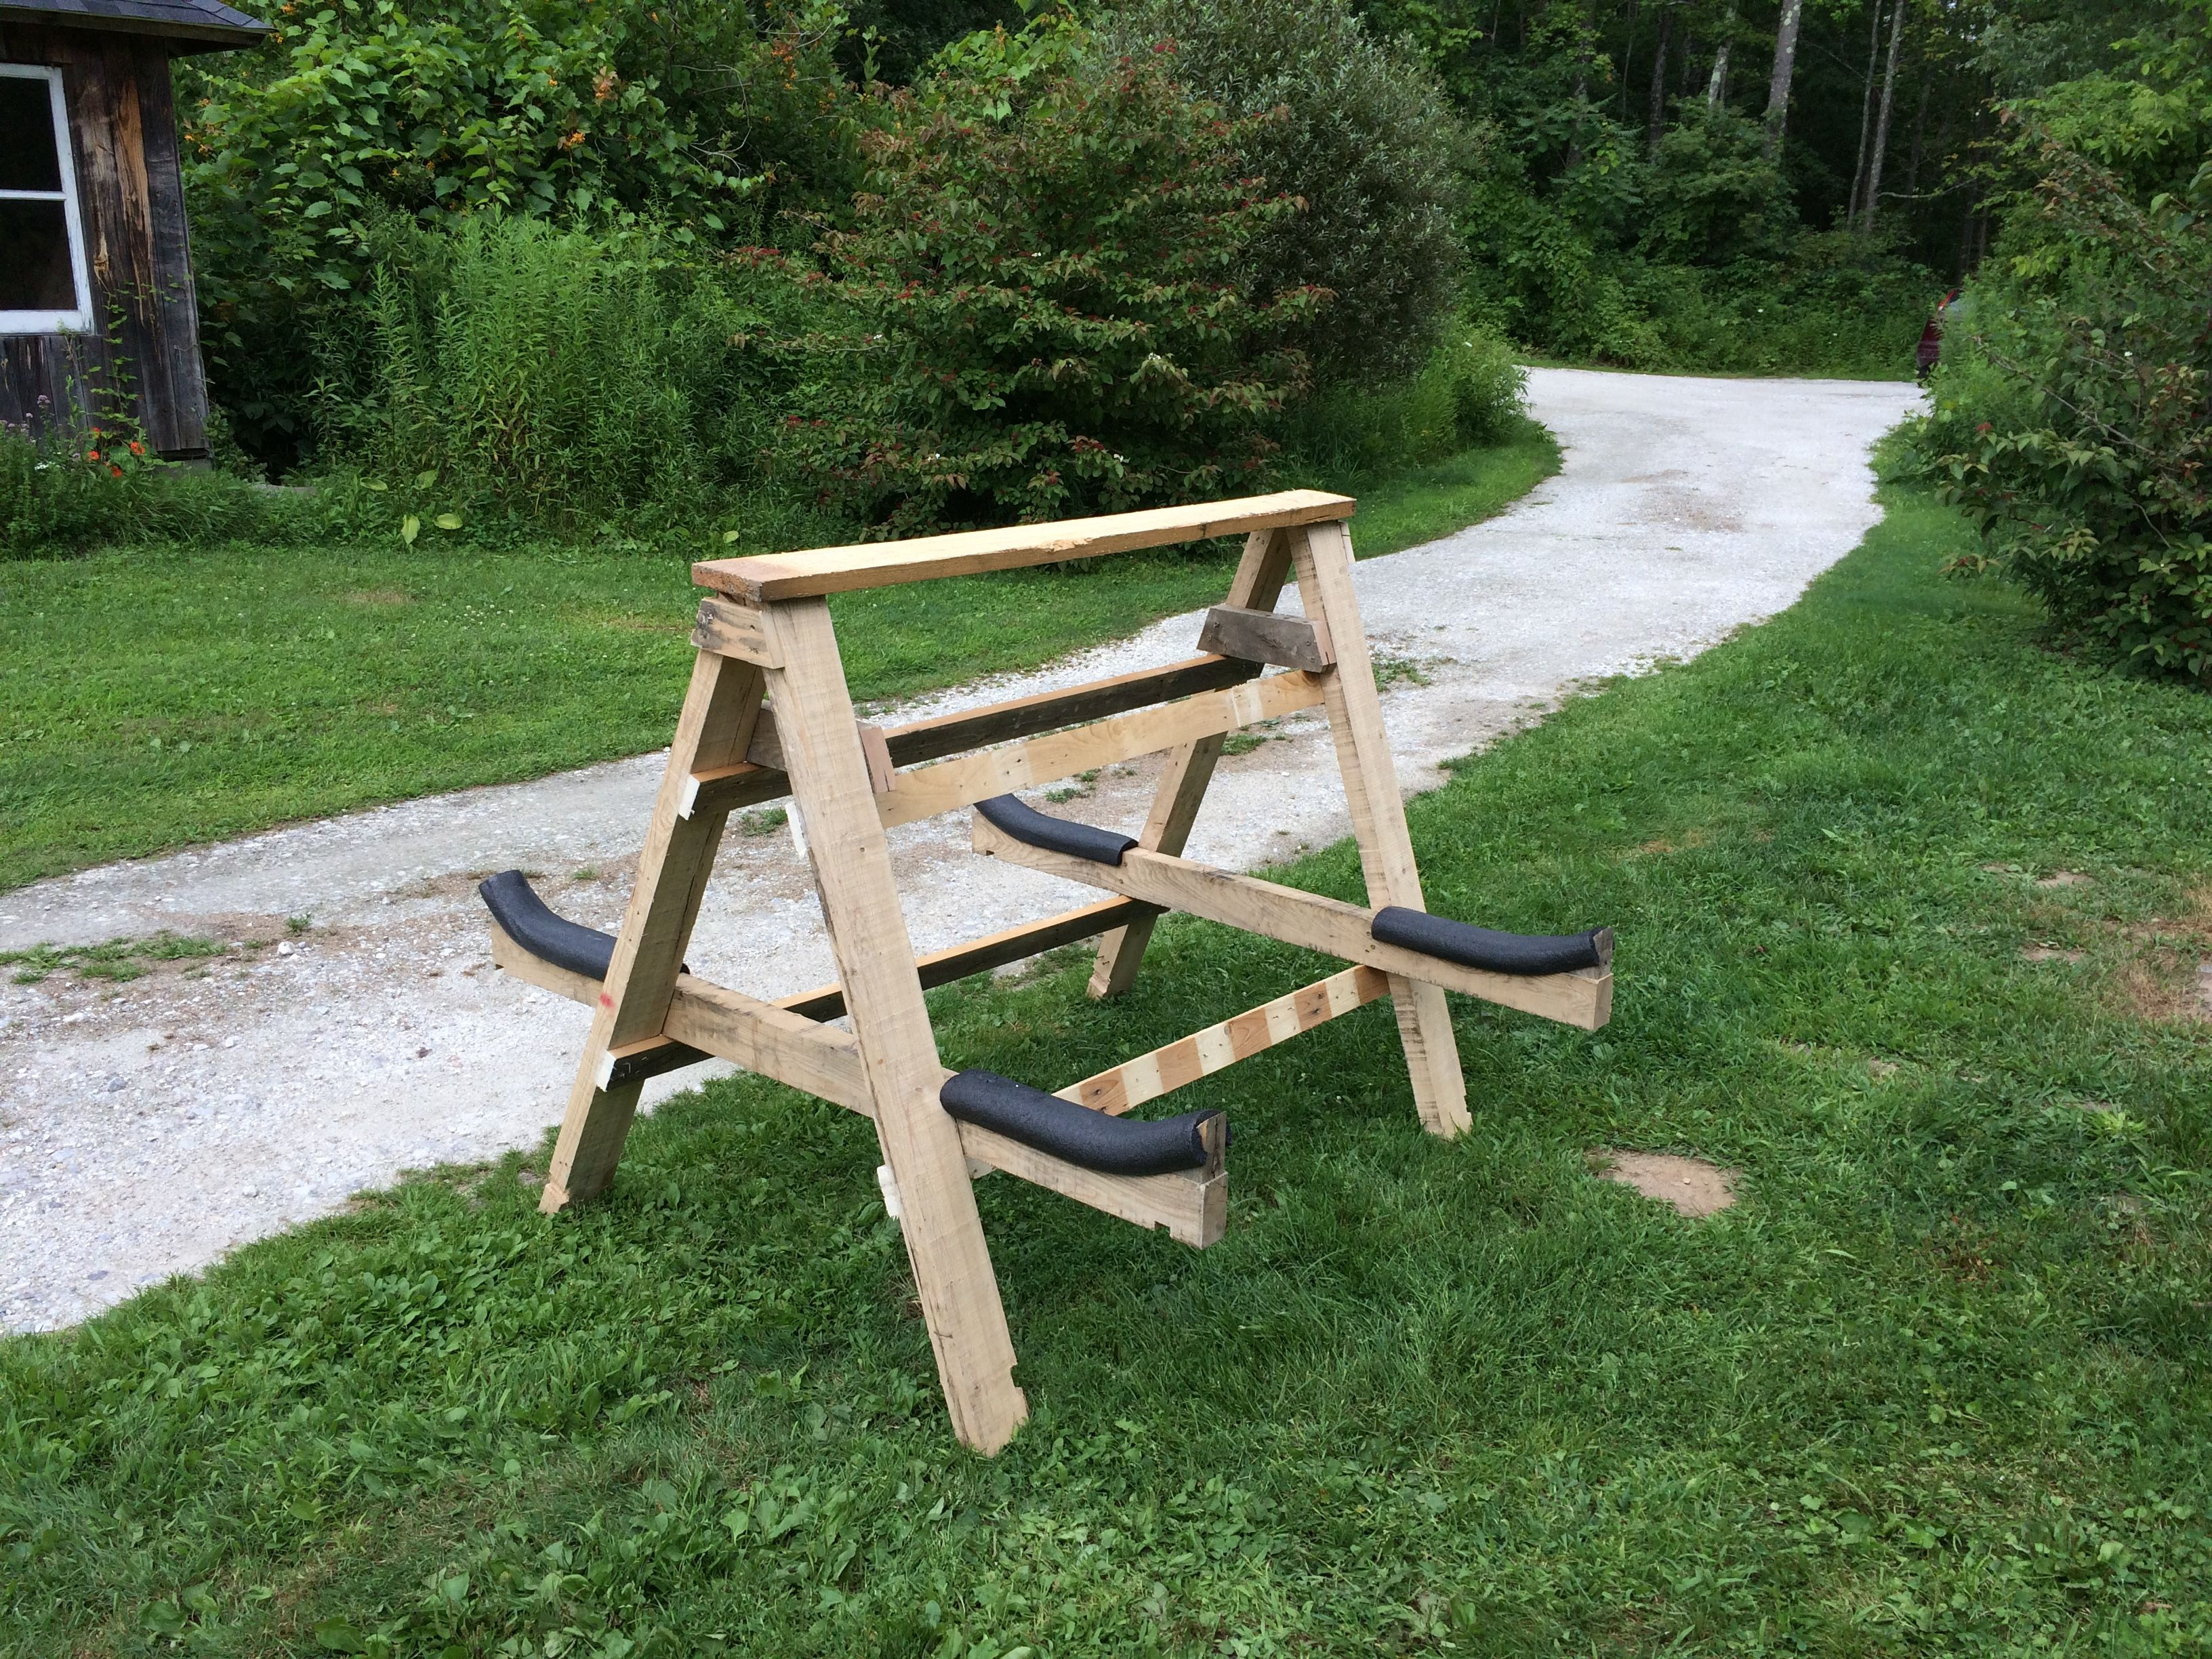 DIY Kayak Storage Rack  DIY Kayak Storage Rack All you need are some 2x4 s I used